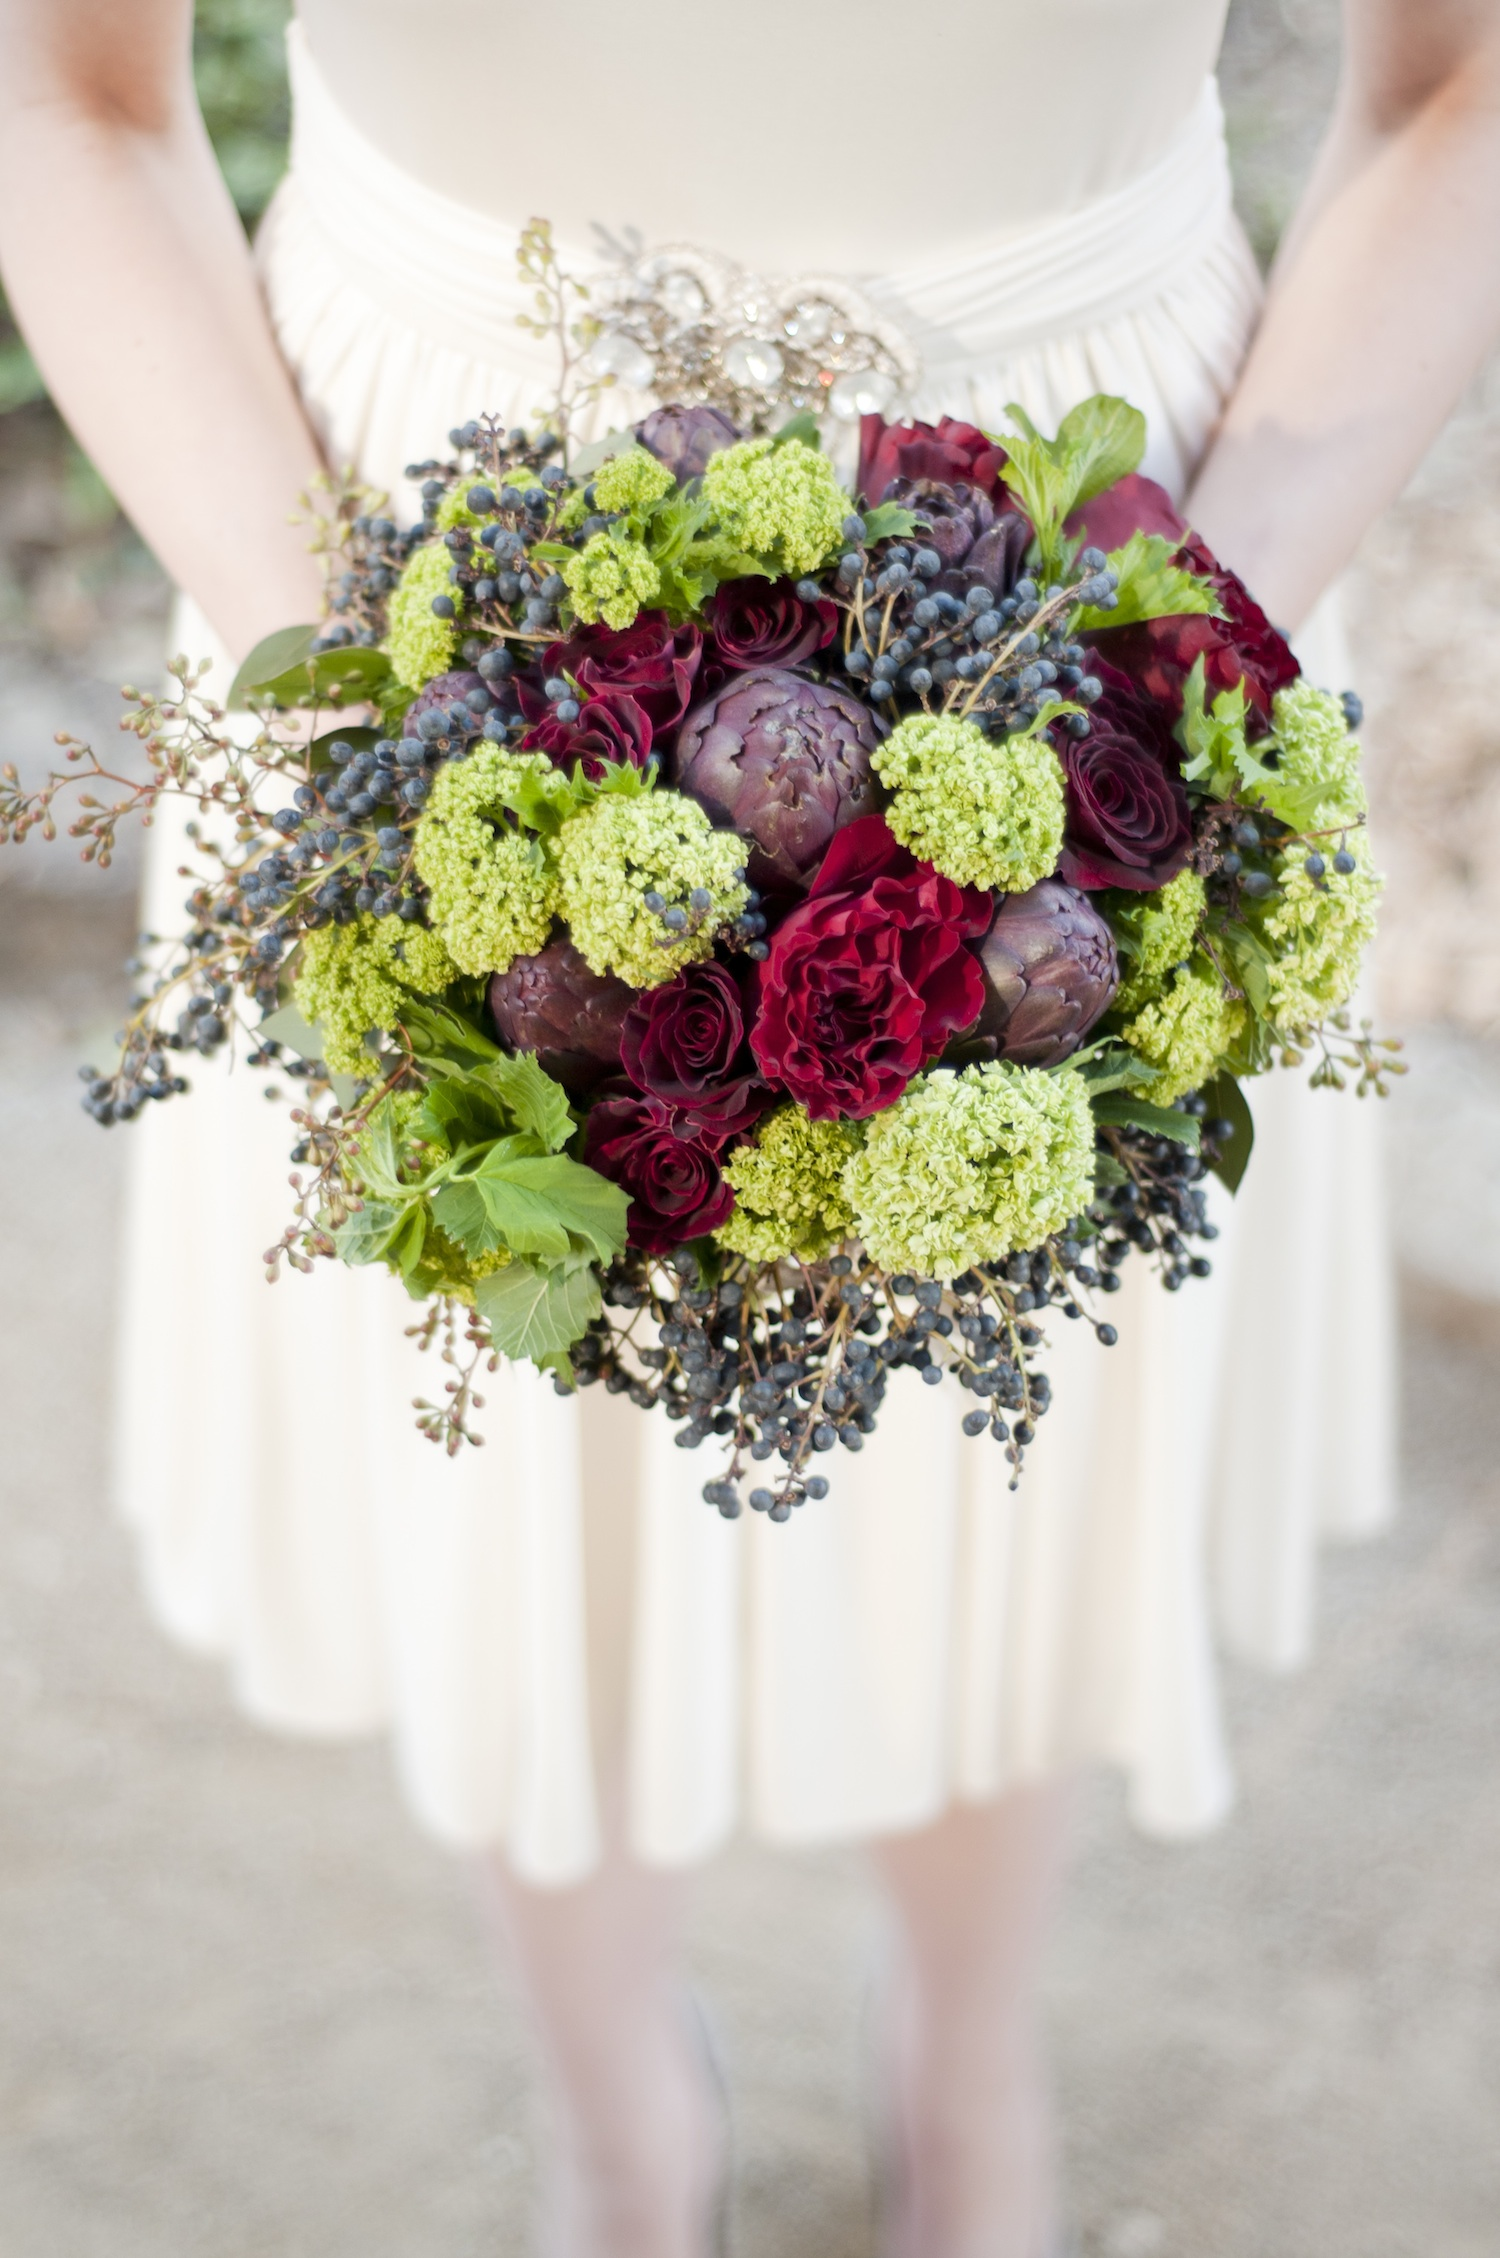 Parisian-themed-wedding-inspiration-romantic-fall-bridal-bouquet.original